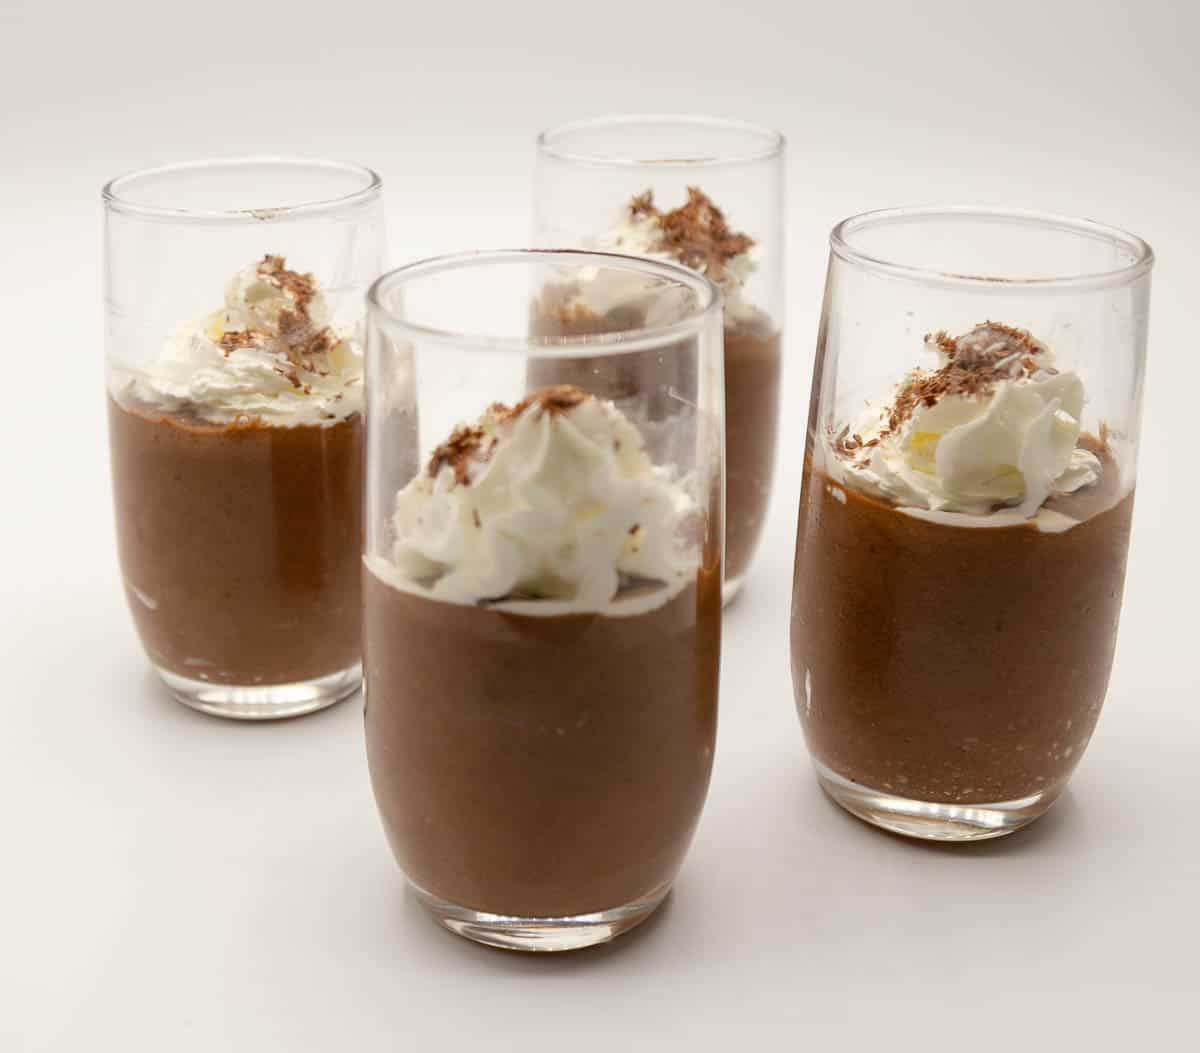 glasses of mousse on a table